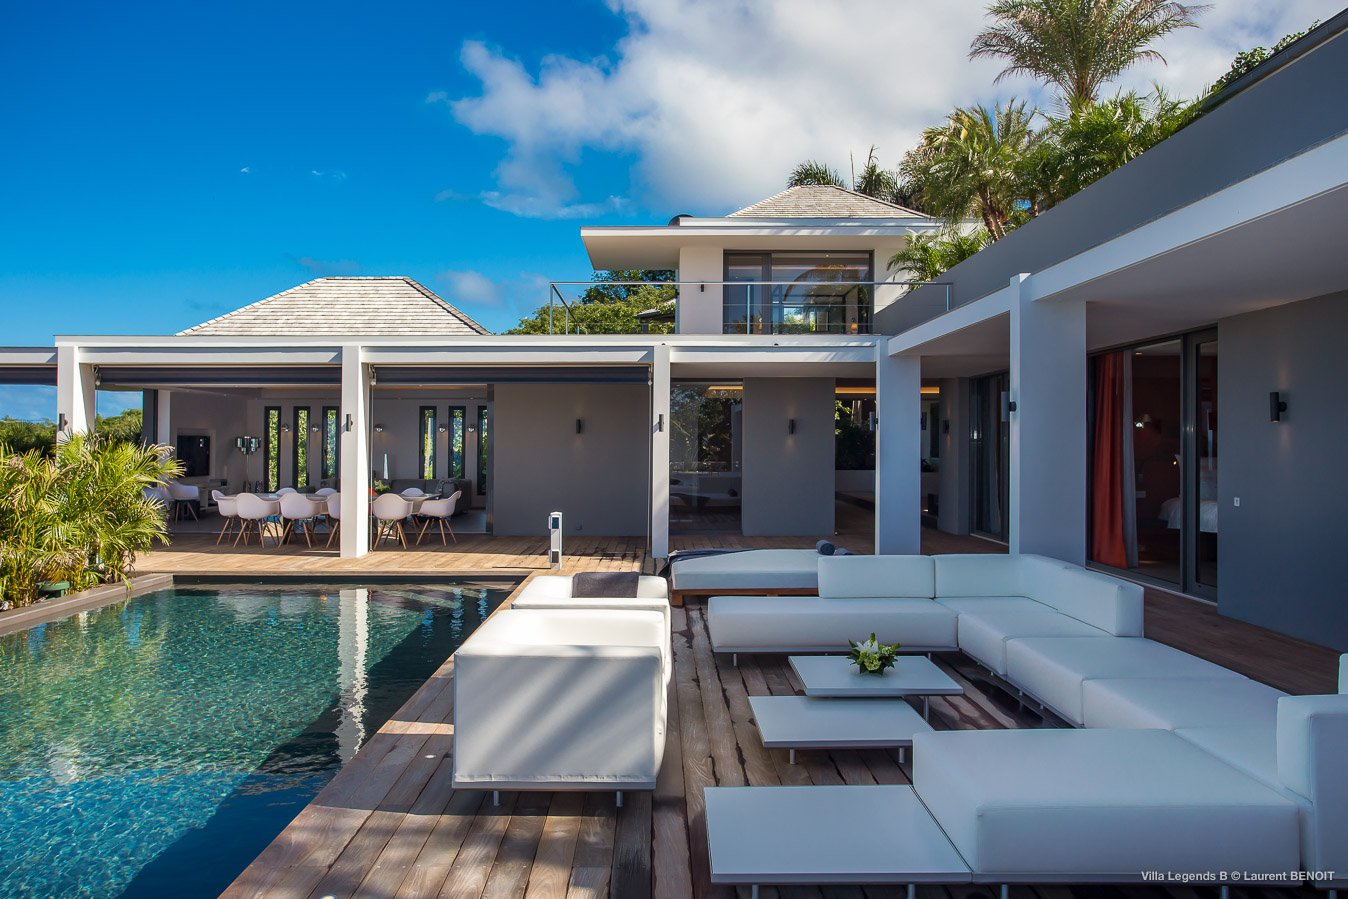 LUXURY VILLA RENT - ST BARTS